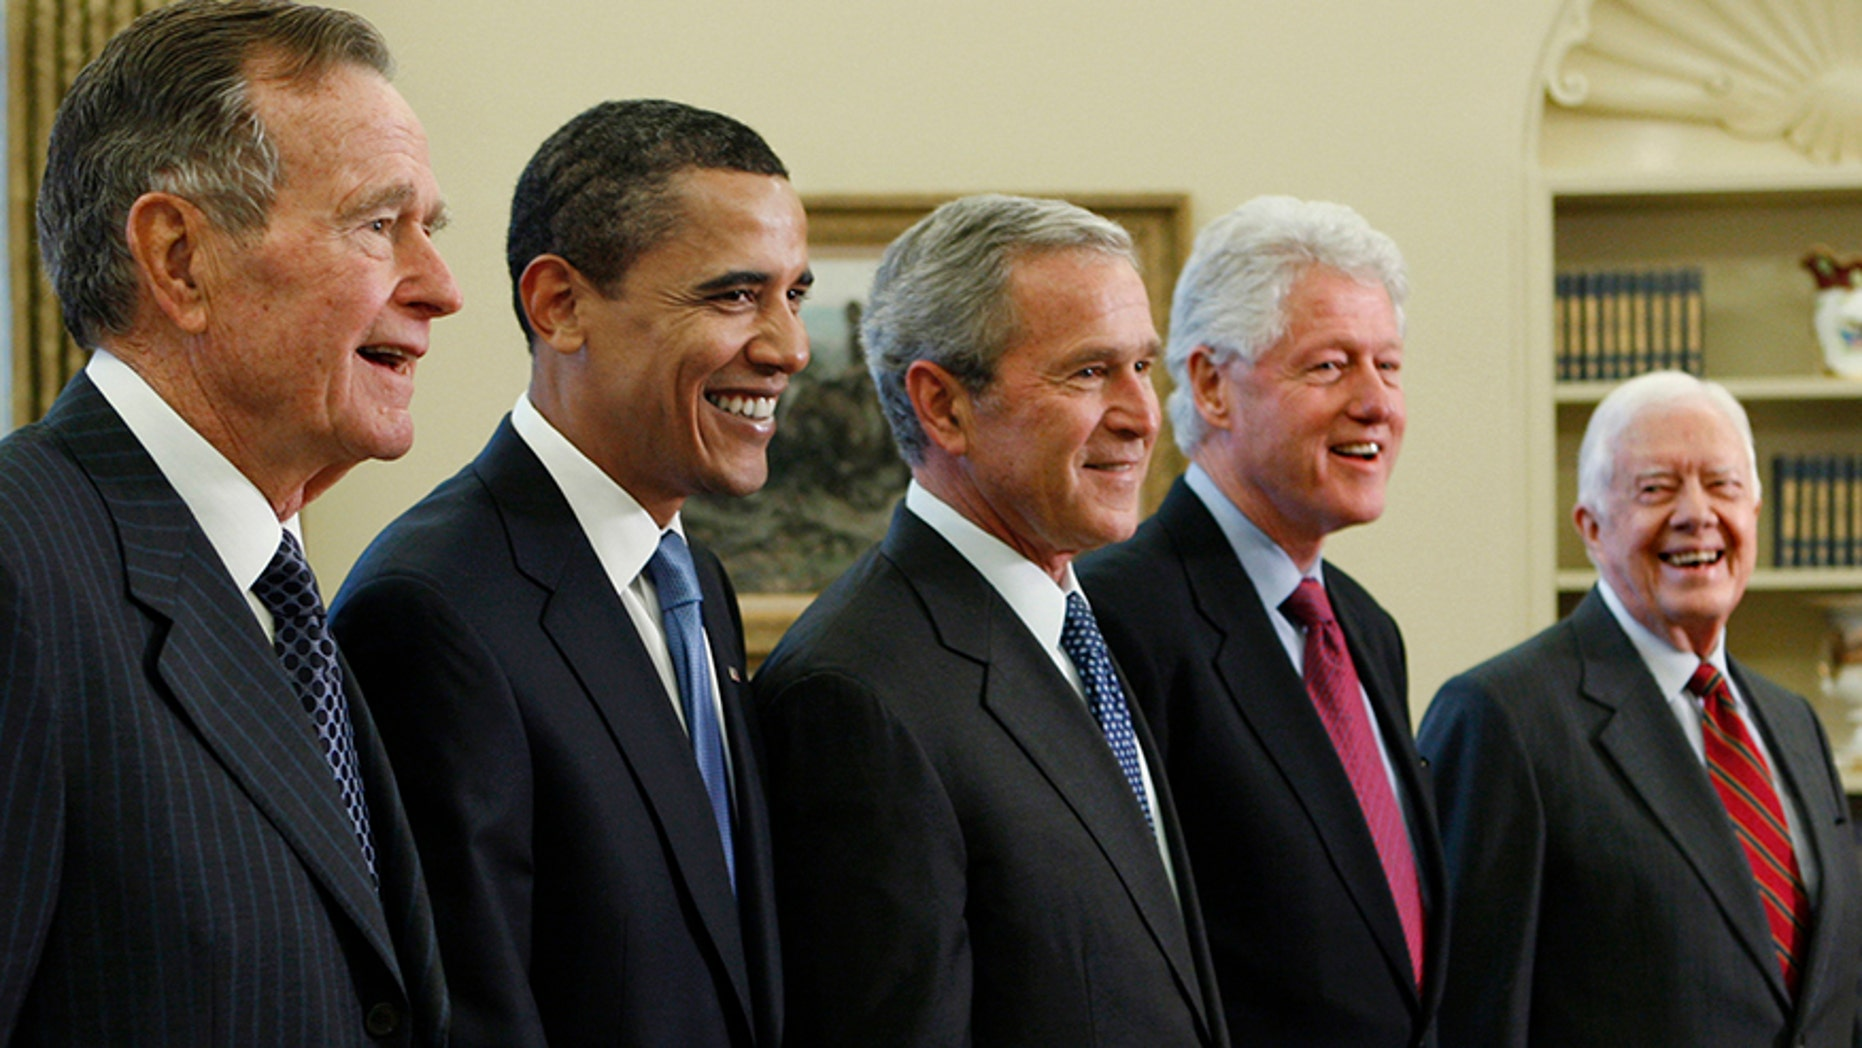 All five living former U.S. presidents will be attending a concert Saturday night, Oct. 21, 2017, in a Texas college town, raising money for relief efforts from Hurricane Harvey, Irma and Maria's devastation in Texas, Florida, Puerto Rico and the U.S. Virgin Islands.